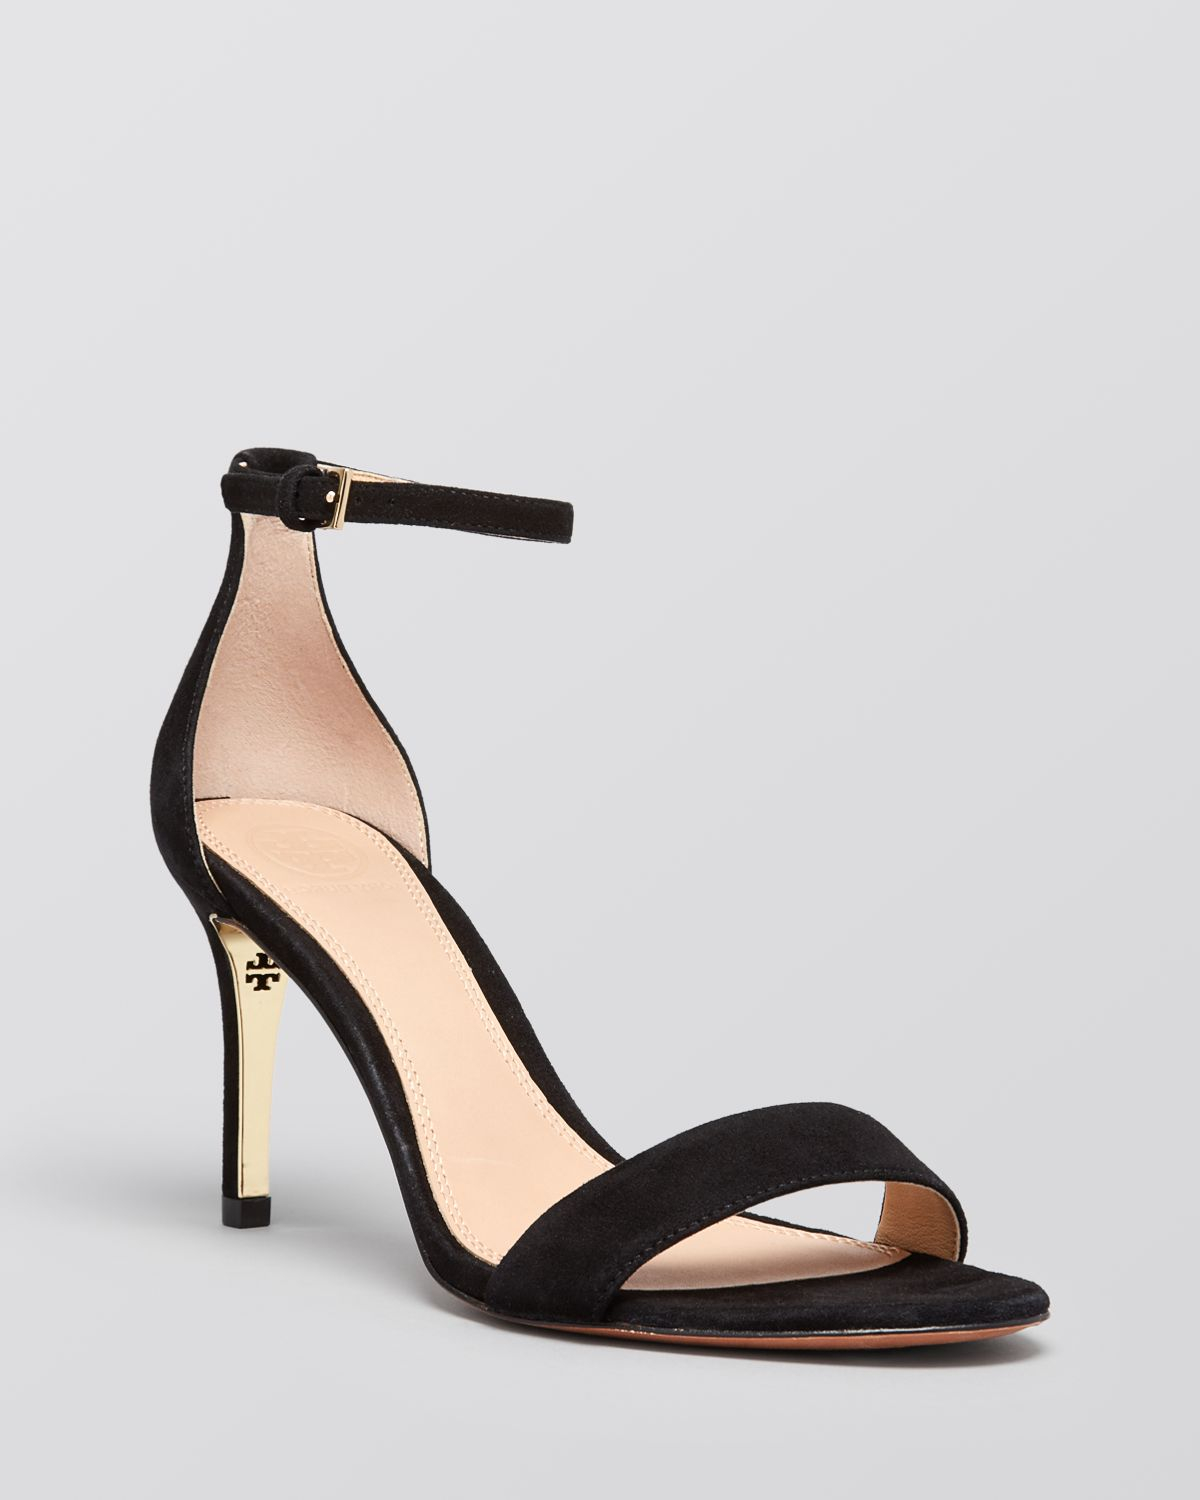 Heels The perfect accompaniment to any outfit, our beautiful collection of heels will lengthen the leg to create an elegant, feminine silhouette. 60s inspired, chunky block heels remain a staple for the season, but no shoe collection is ever complete without the perfect pair of black high heels .